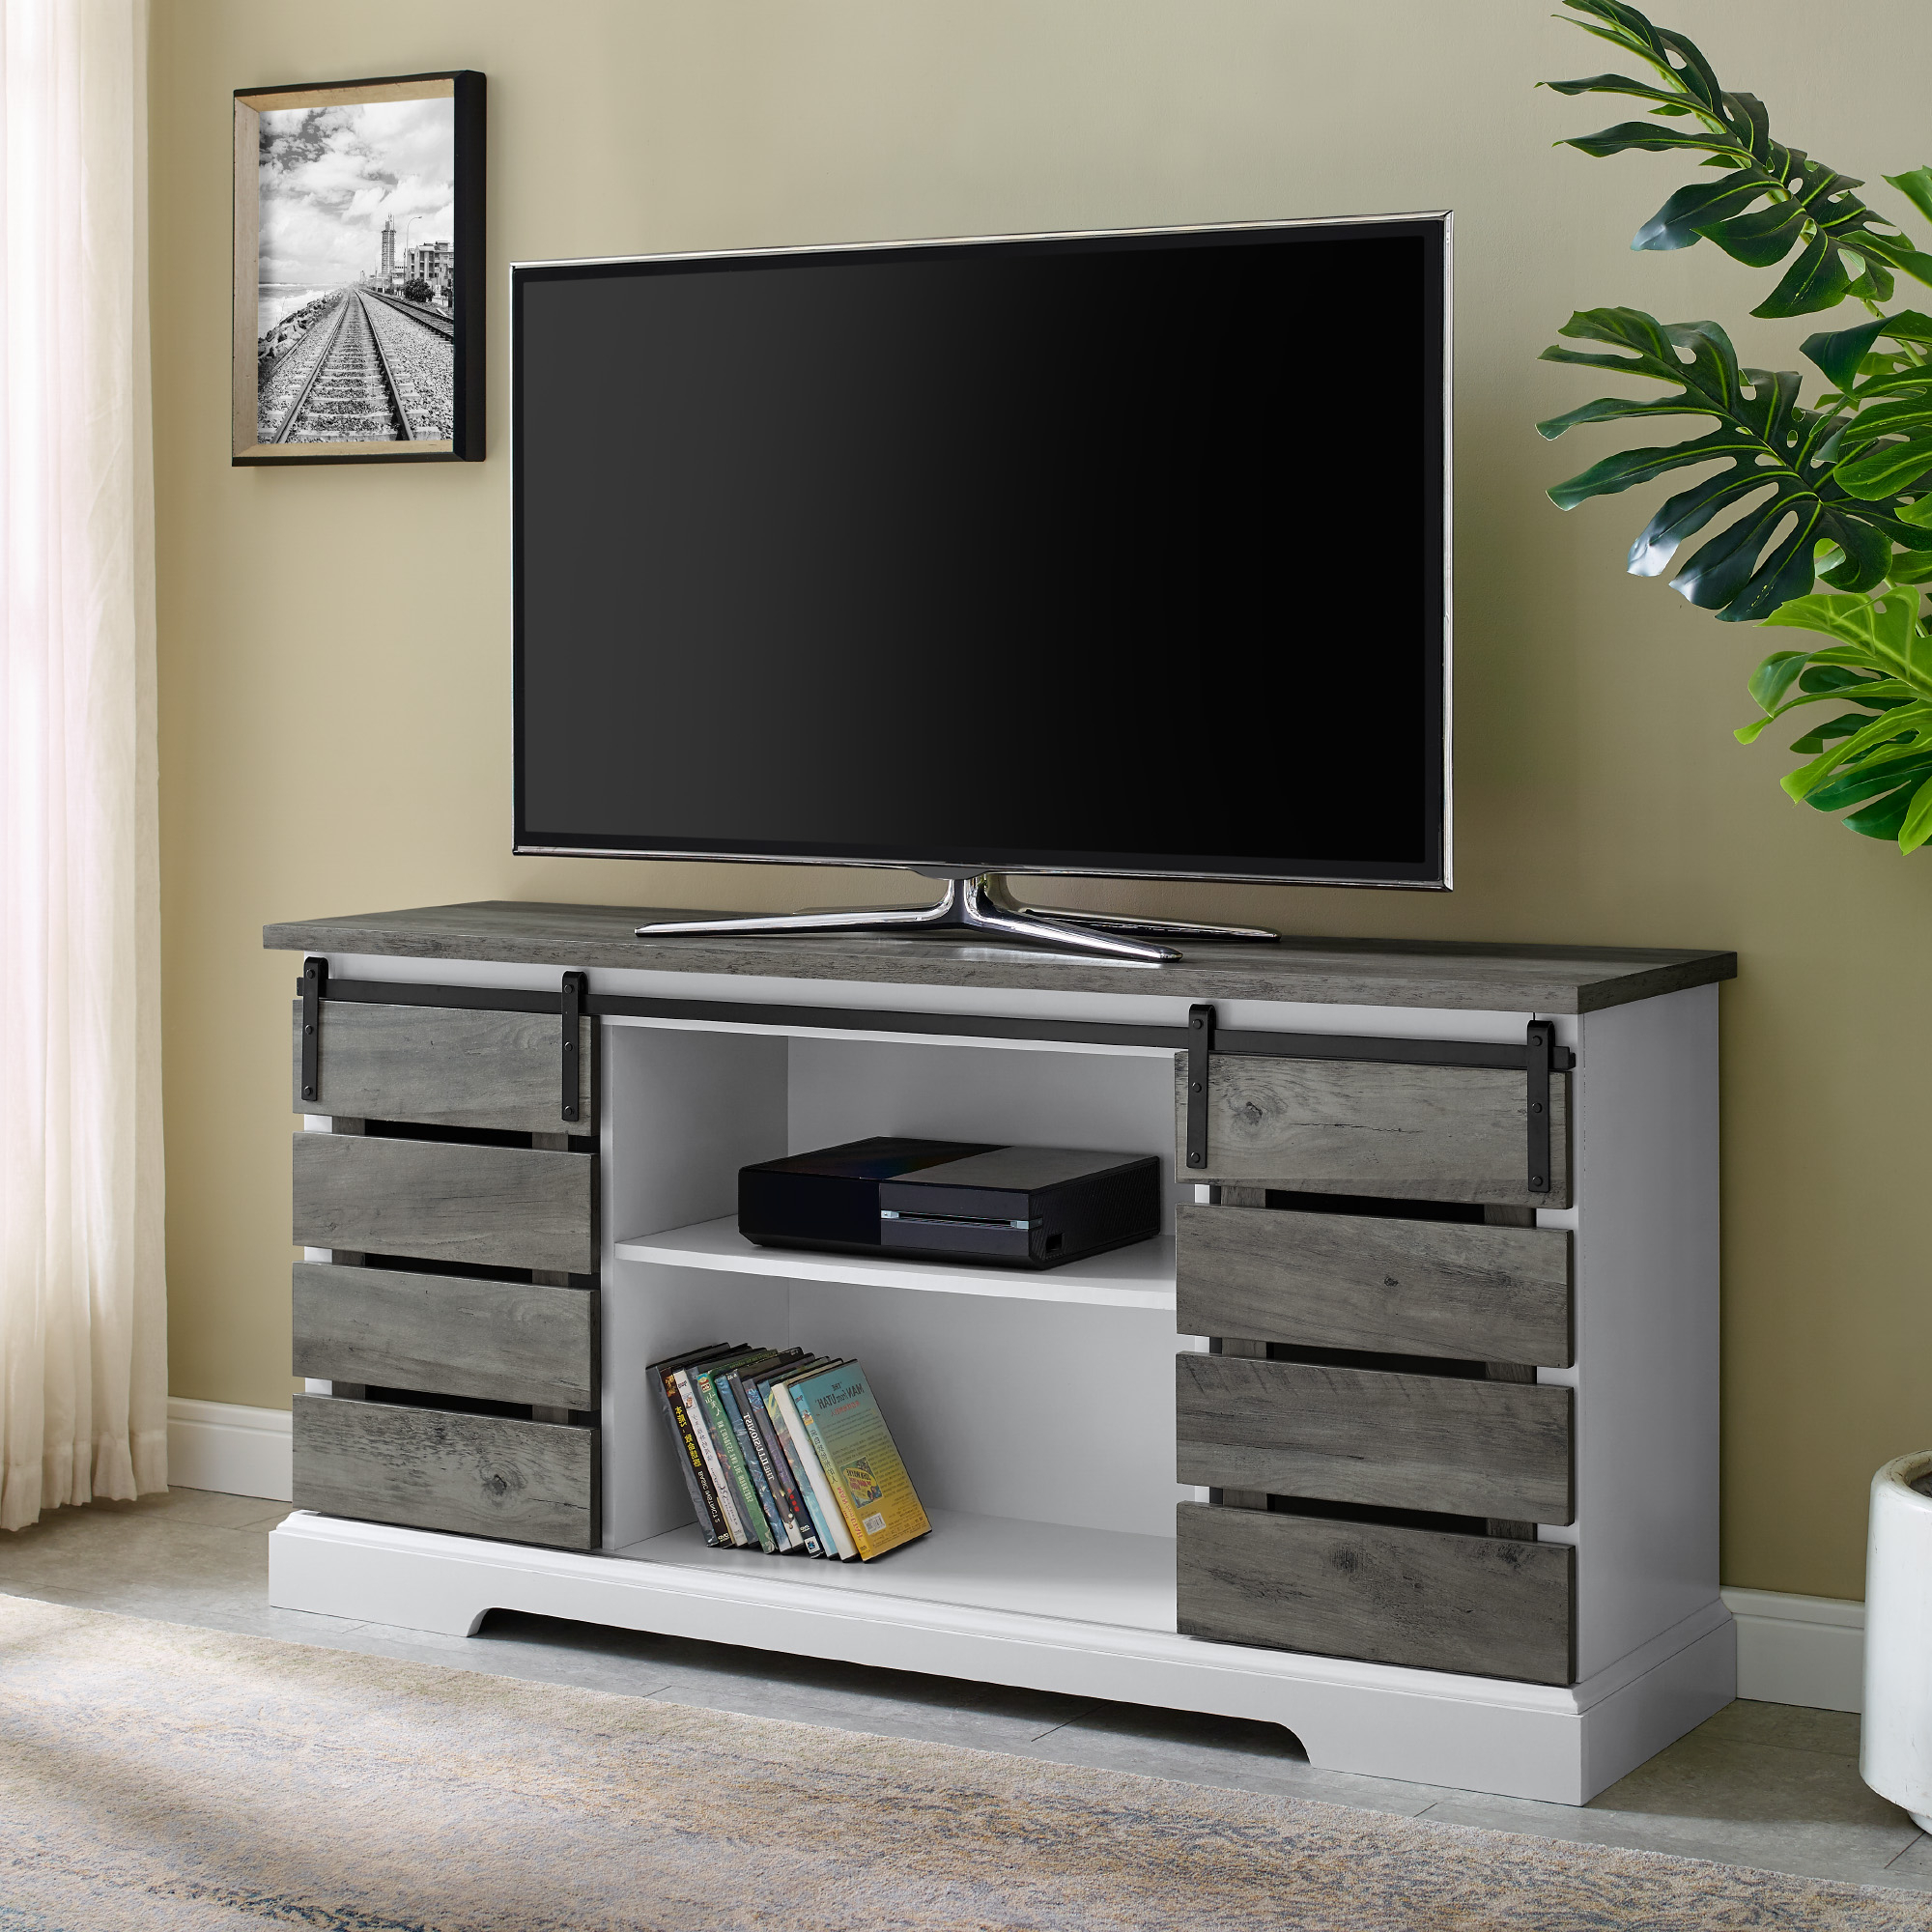 Woven Paths Farmhouse Sliding Slat Door Tv Stand For Tvs With Woven Paths Farmhouse Barn Door Tv Stands In Multiple Finishes (View 2 of 20)